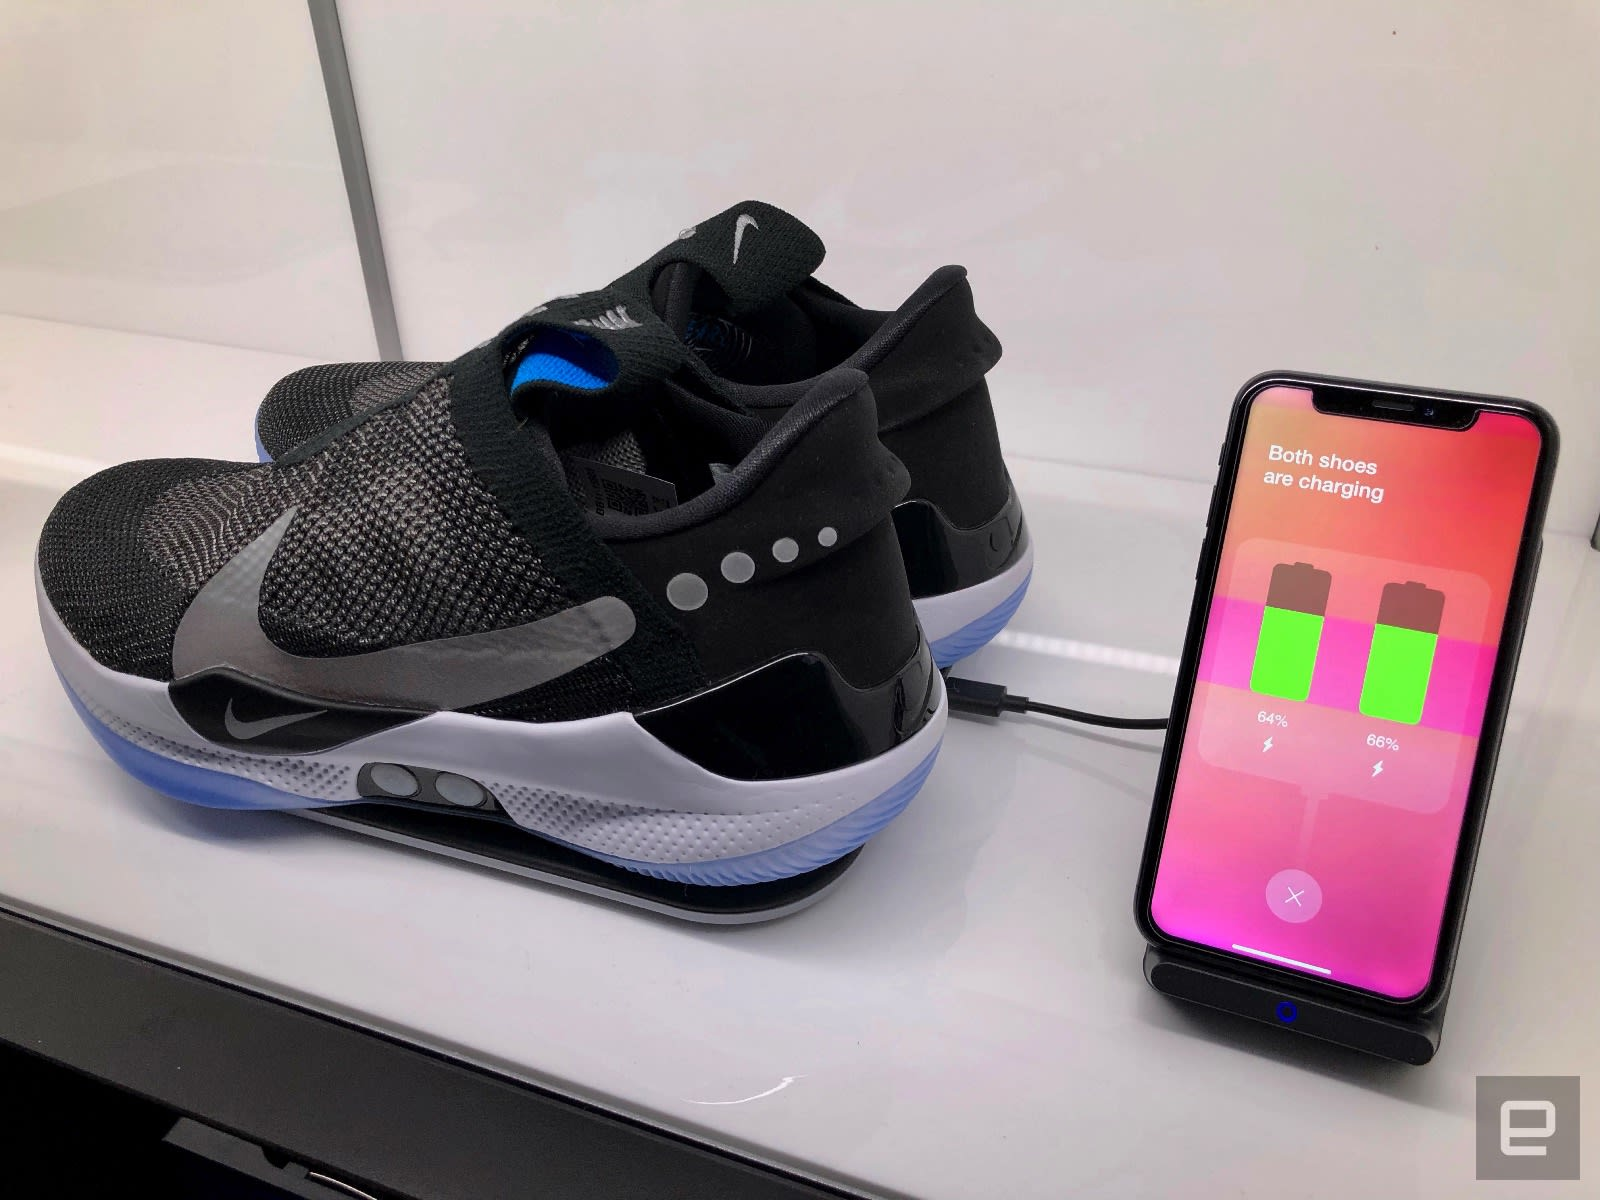 60c055c02d5 A closer look at Nike s Adapt BB auto-lacing basketball shoes